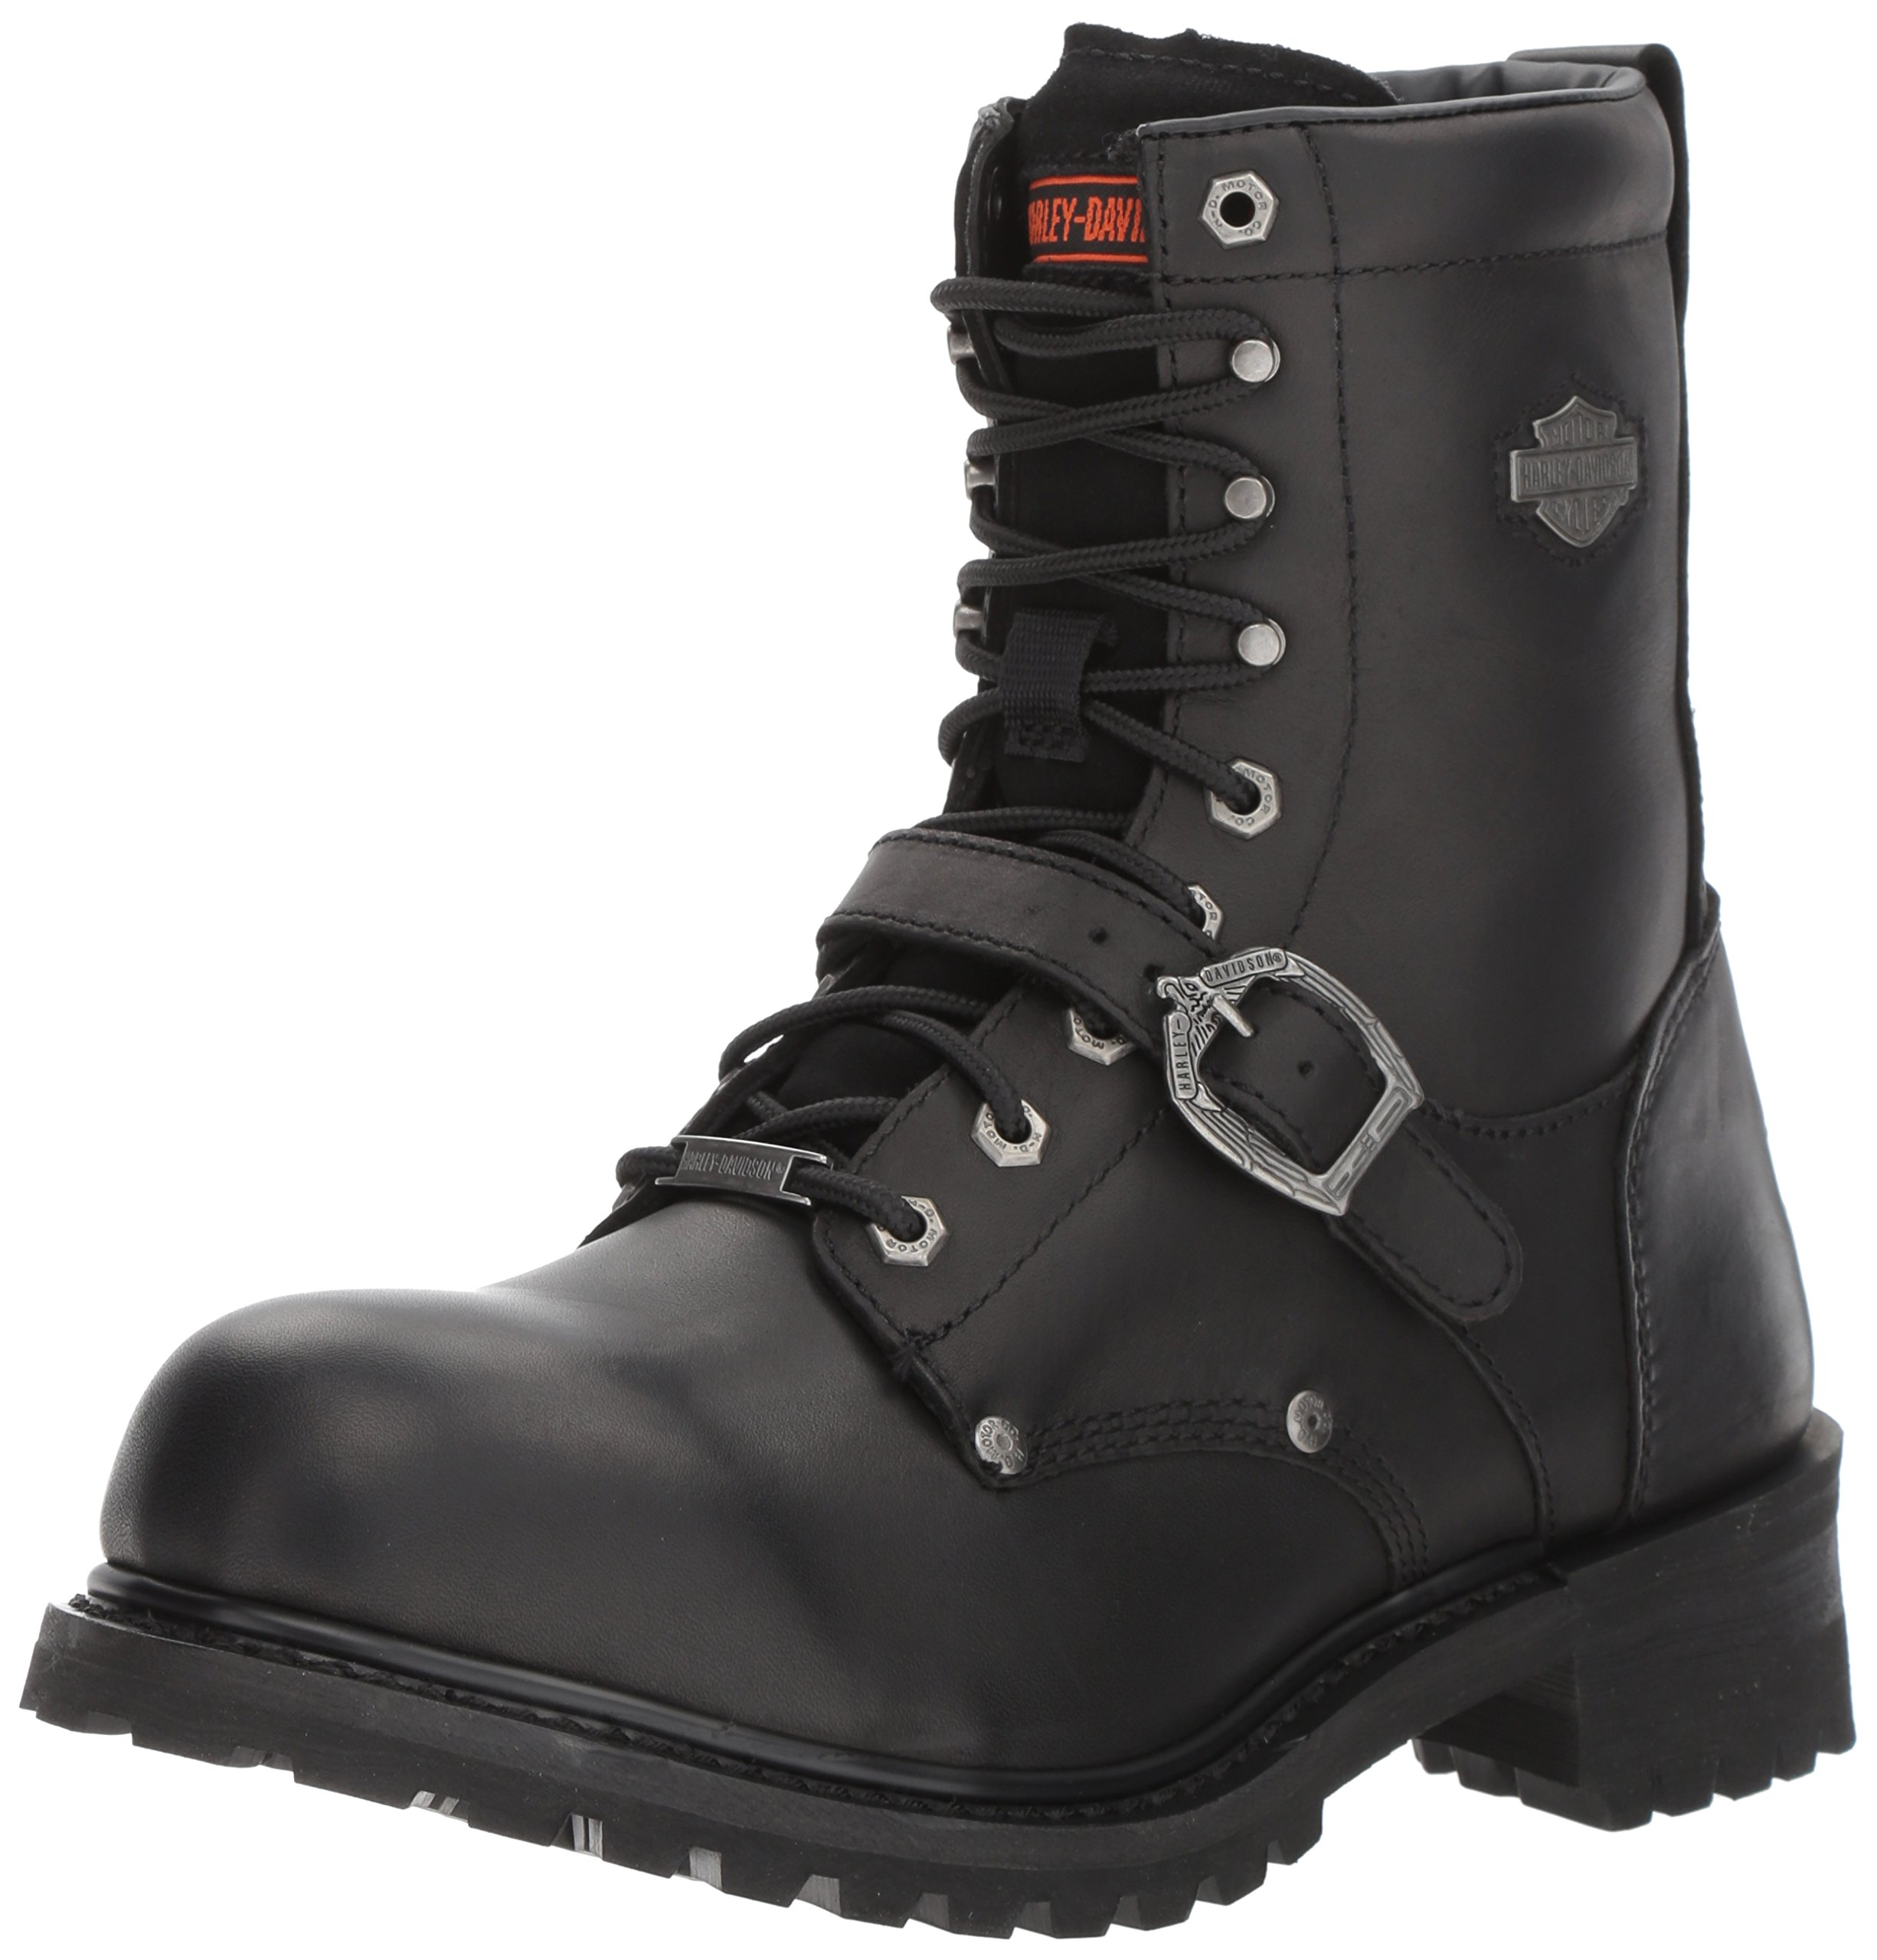 Harley-Davidson Men's Faded Glory Motorcycle Boot, Black, 10.5 Wide US by Harley-Davidson